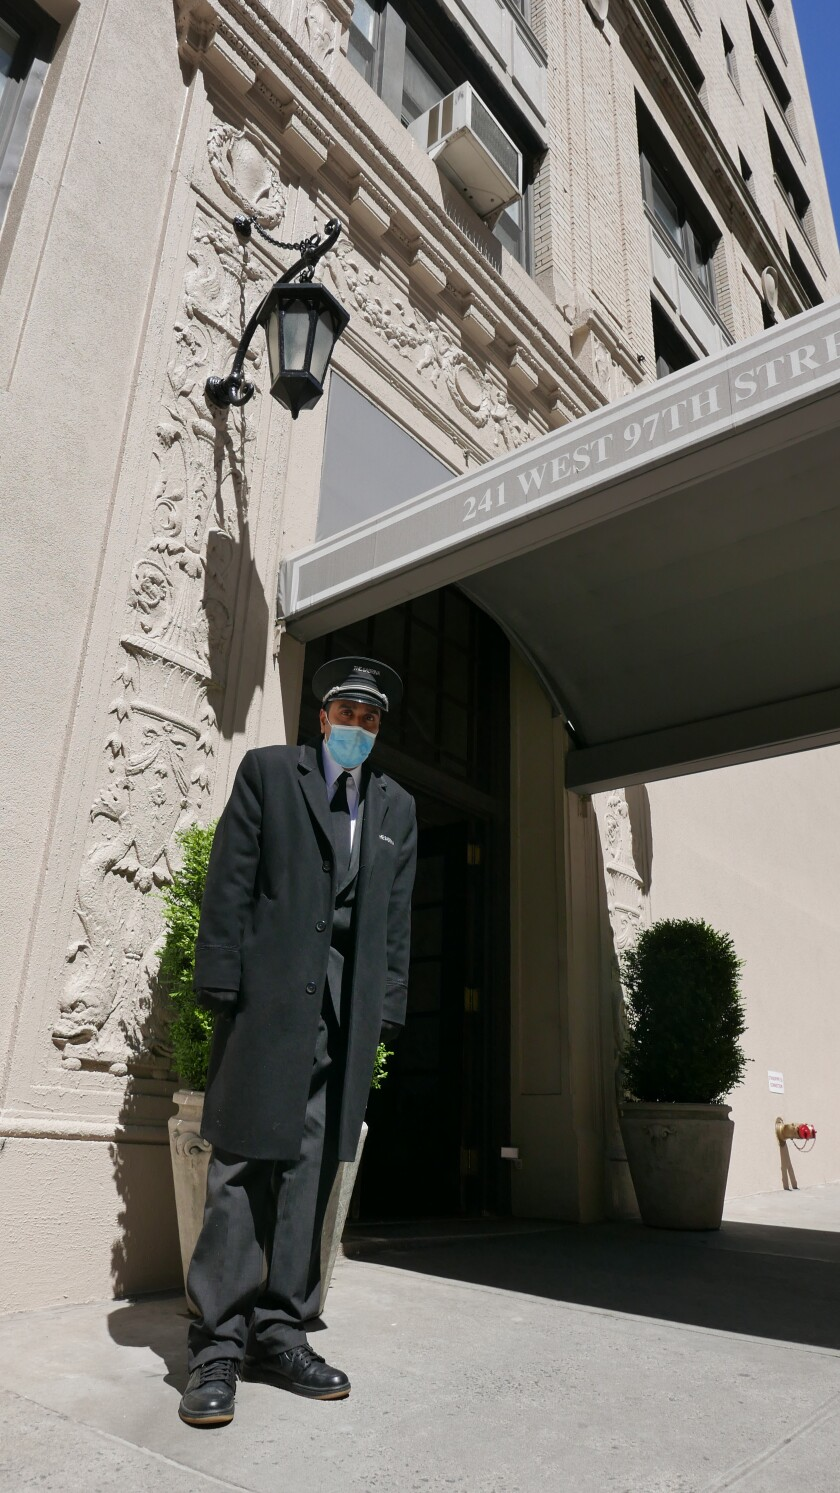 """""""I love serving the people of New York,"""" said DeJesus, who has worked as a doorman for 25 years."""